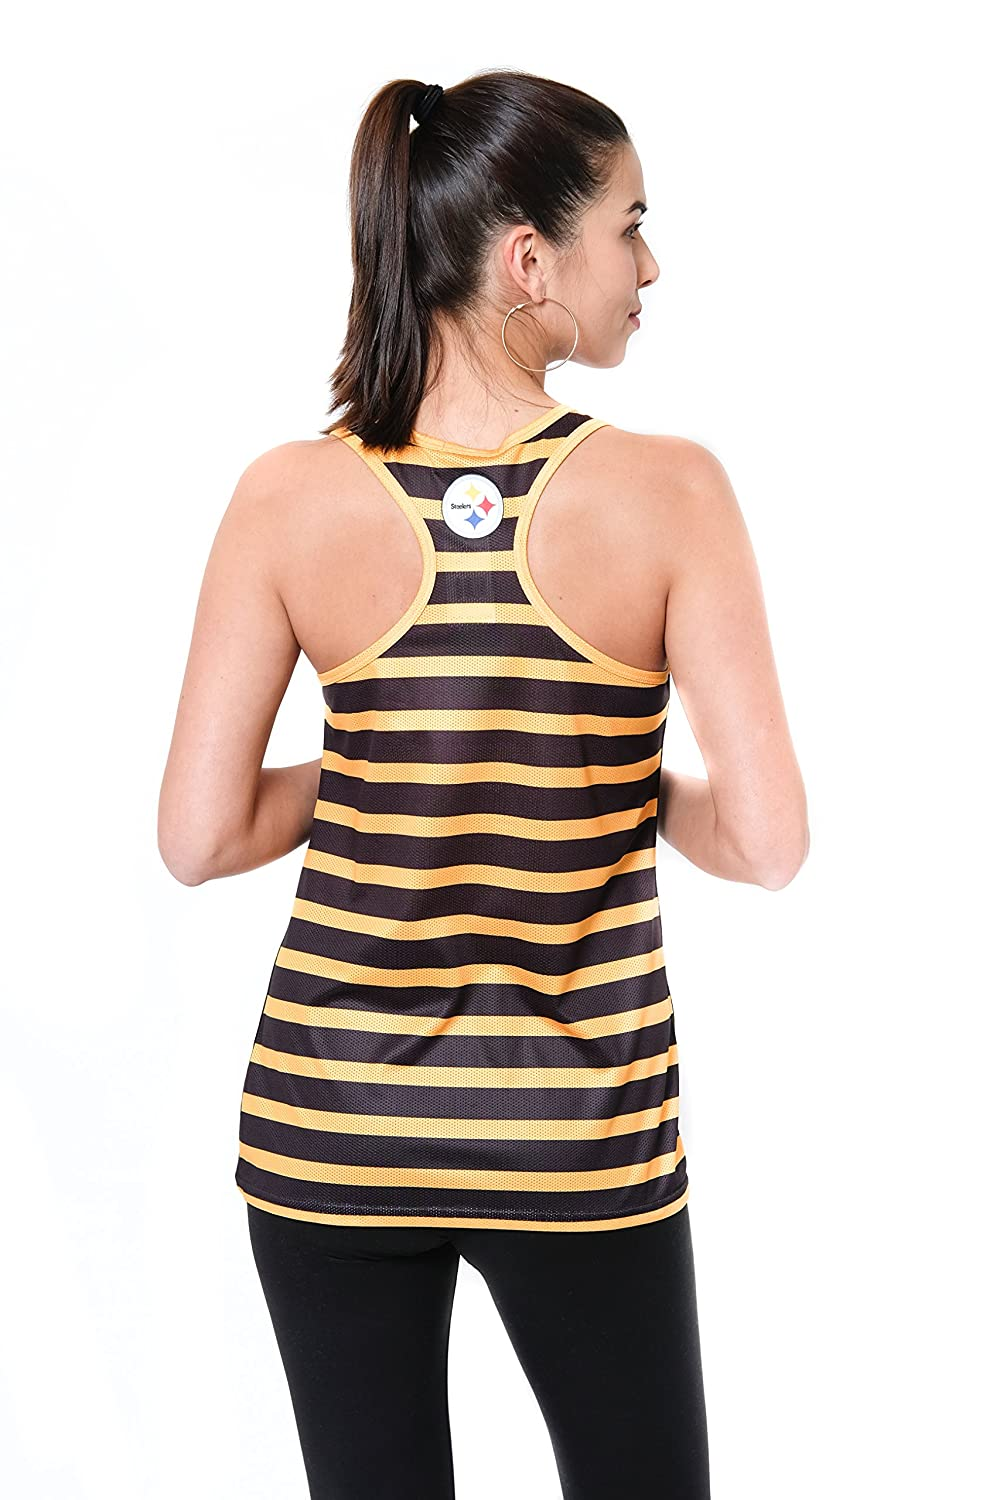 X-Large Team Color NFL Pittsburgh Steelers Ultra Game Womens MESH RACERBACK TANK